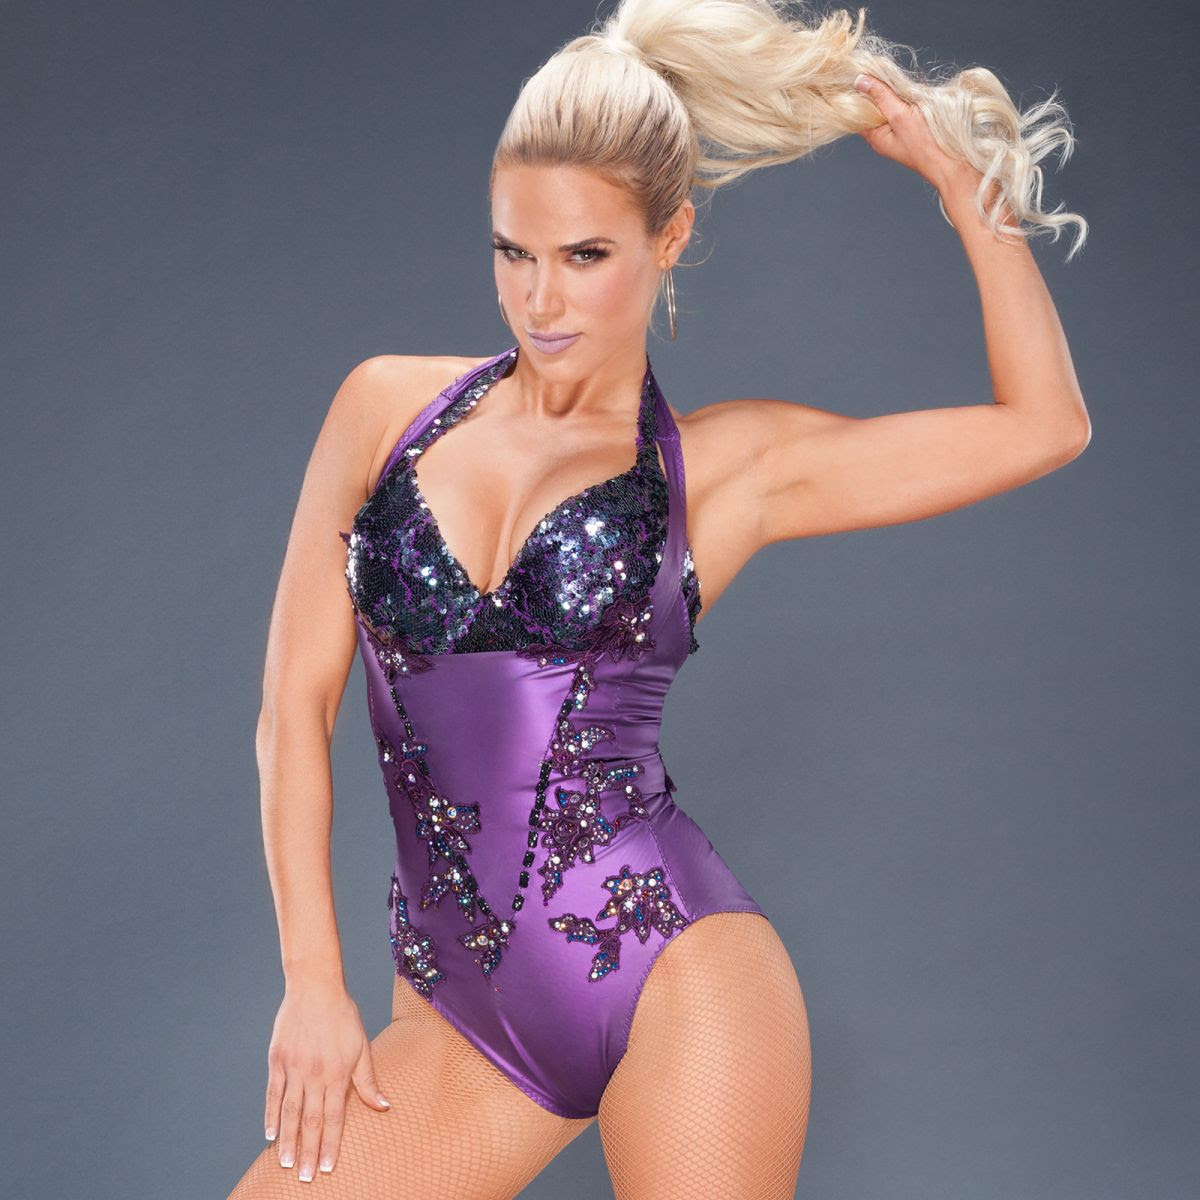 WWE - Lana for Wrestlemania 32 Attire Photoshoot